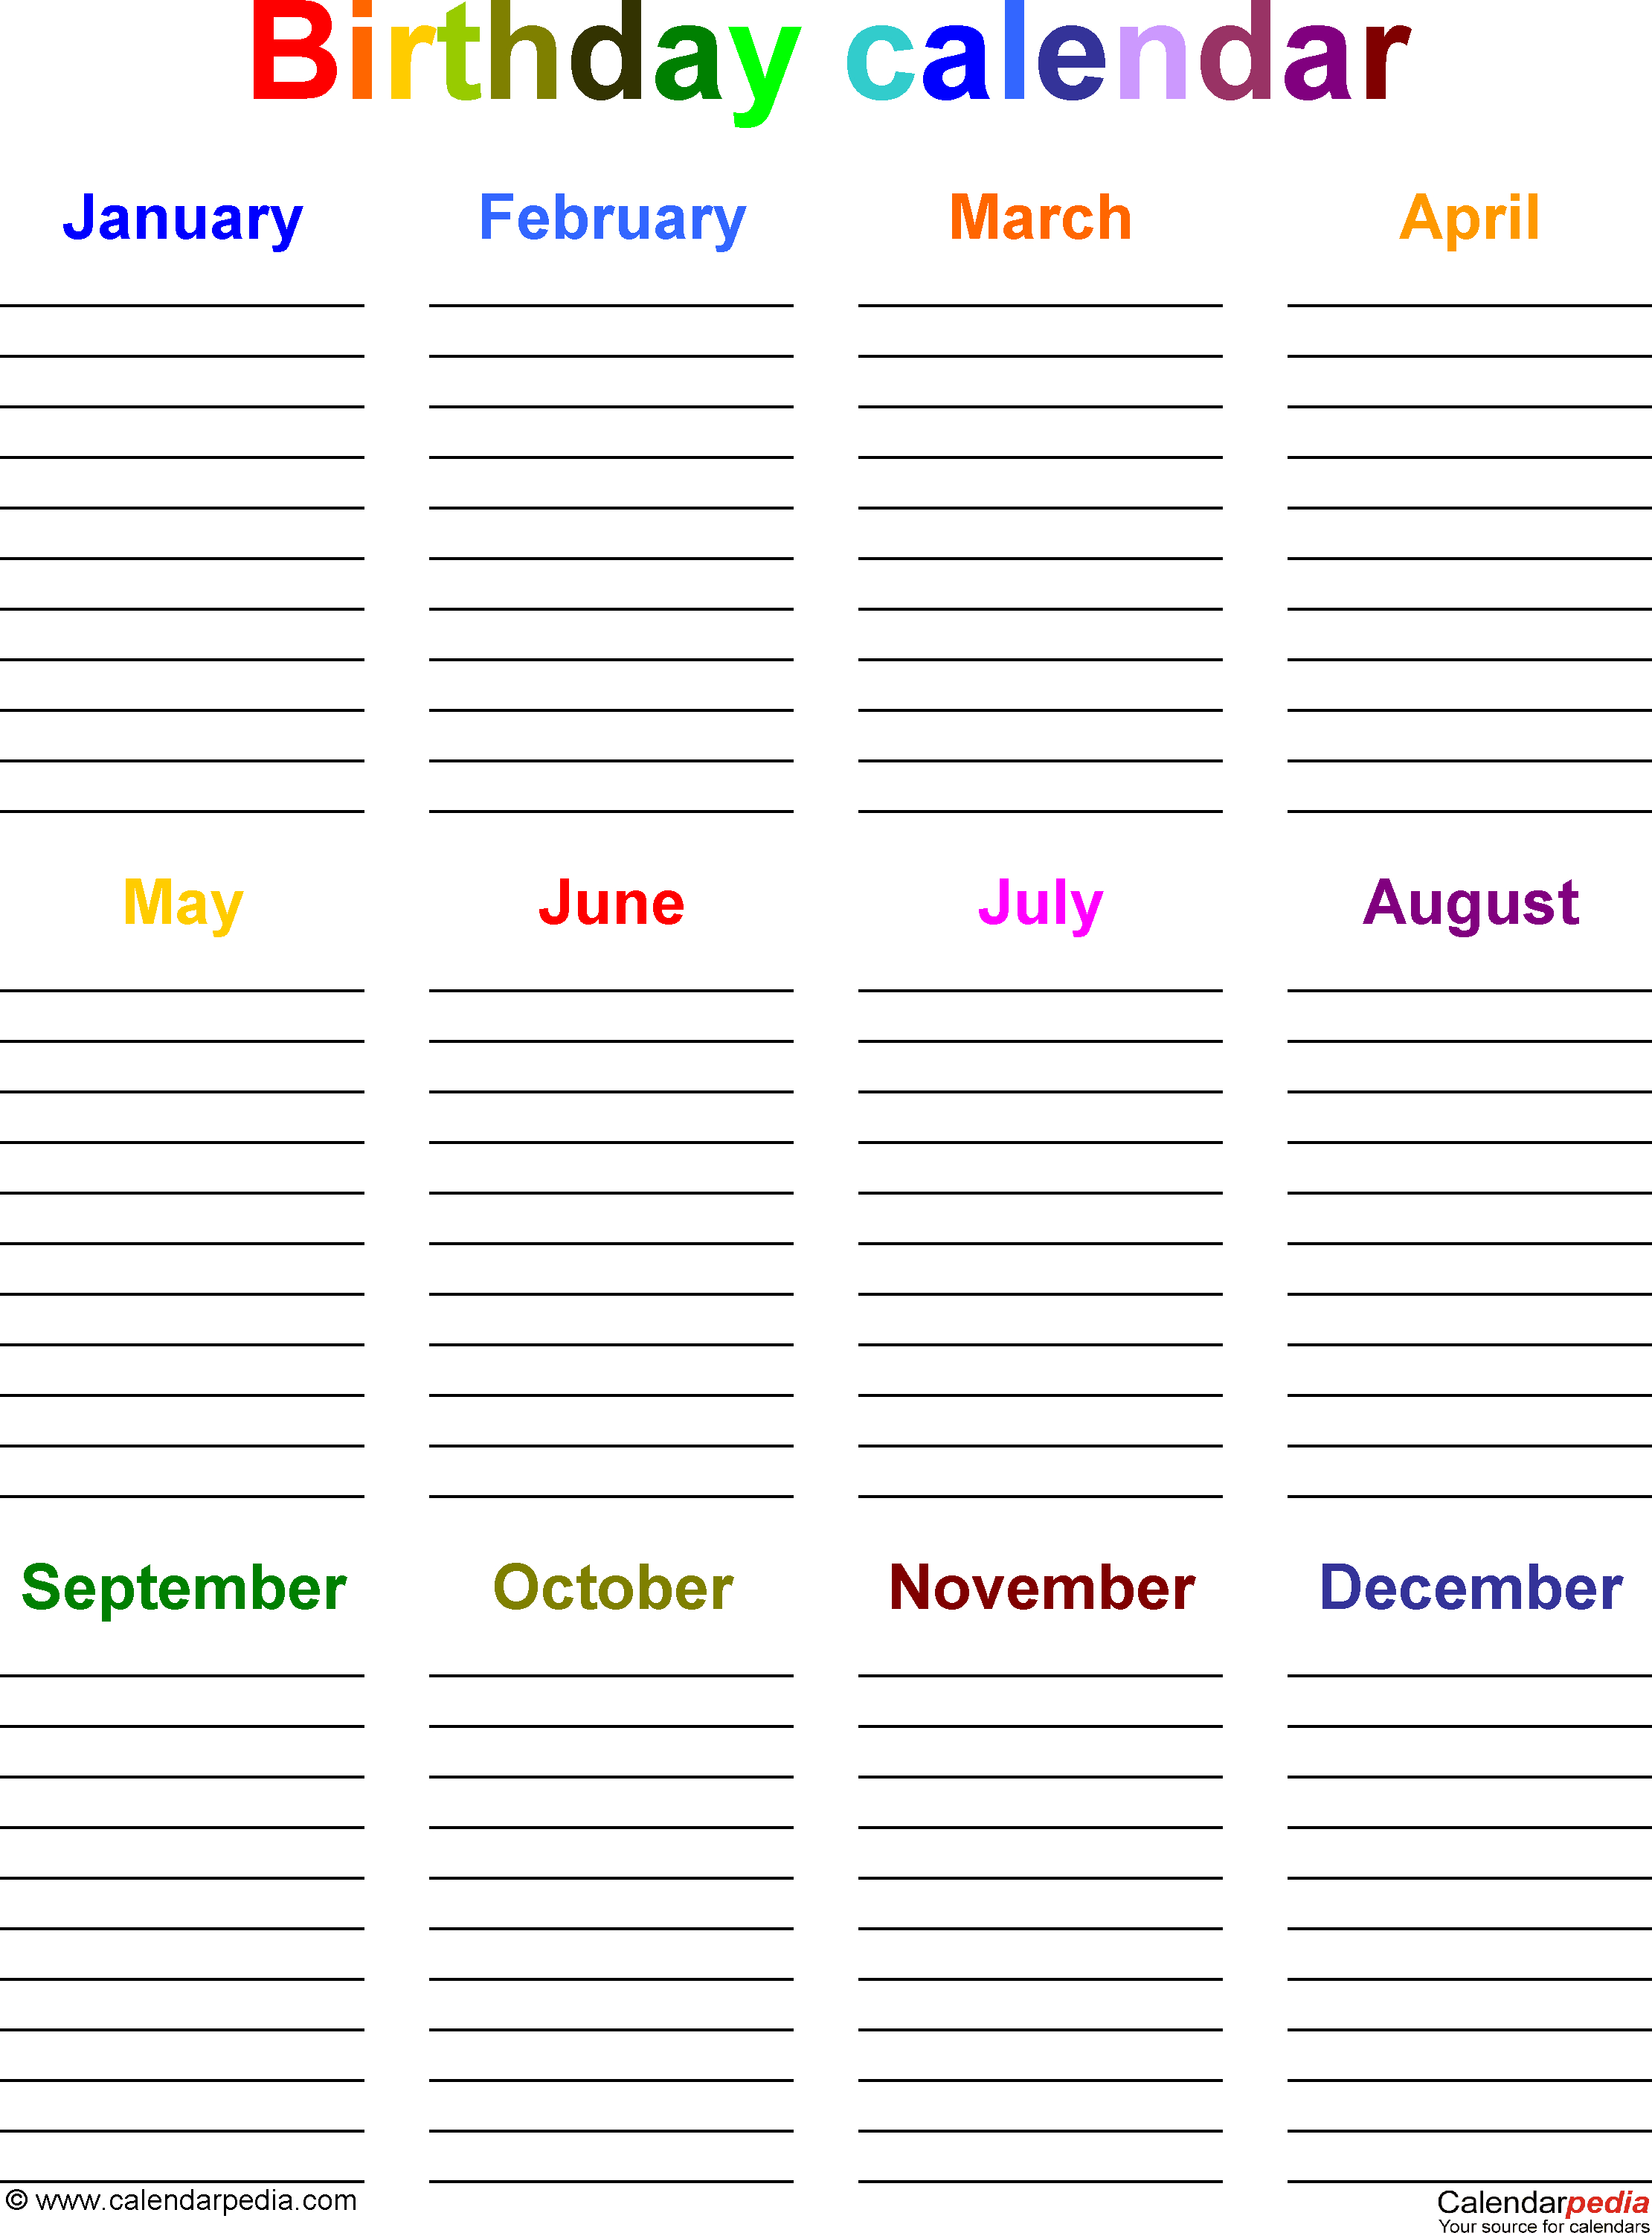 Birthday Calendars - 7 Free Printable Word Templates pertaining to Edited Birthday Calendar Template